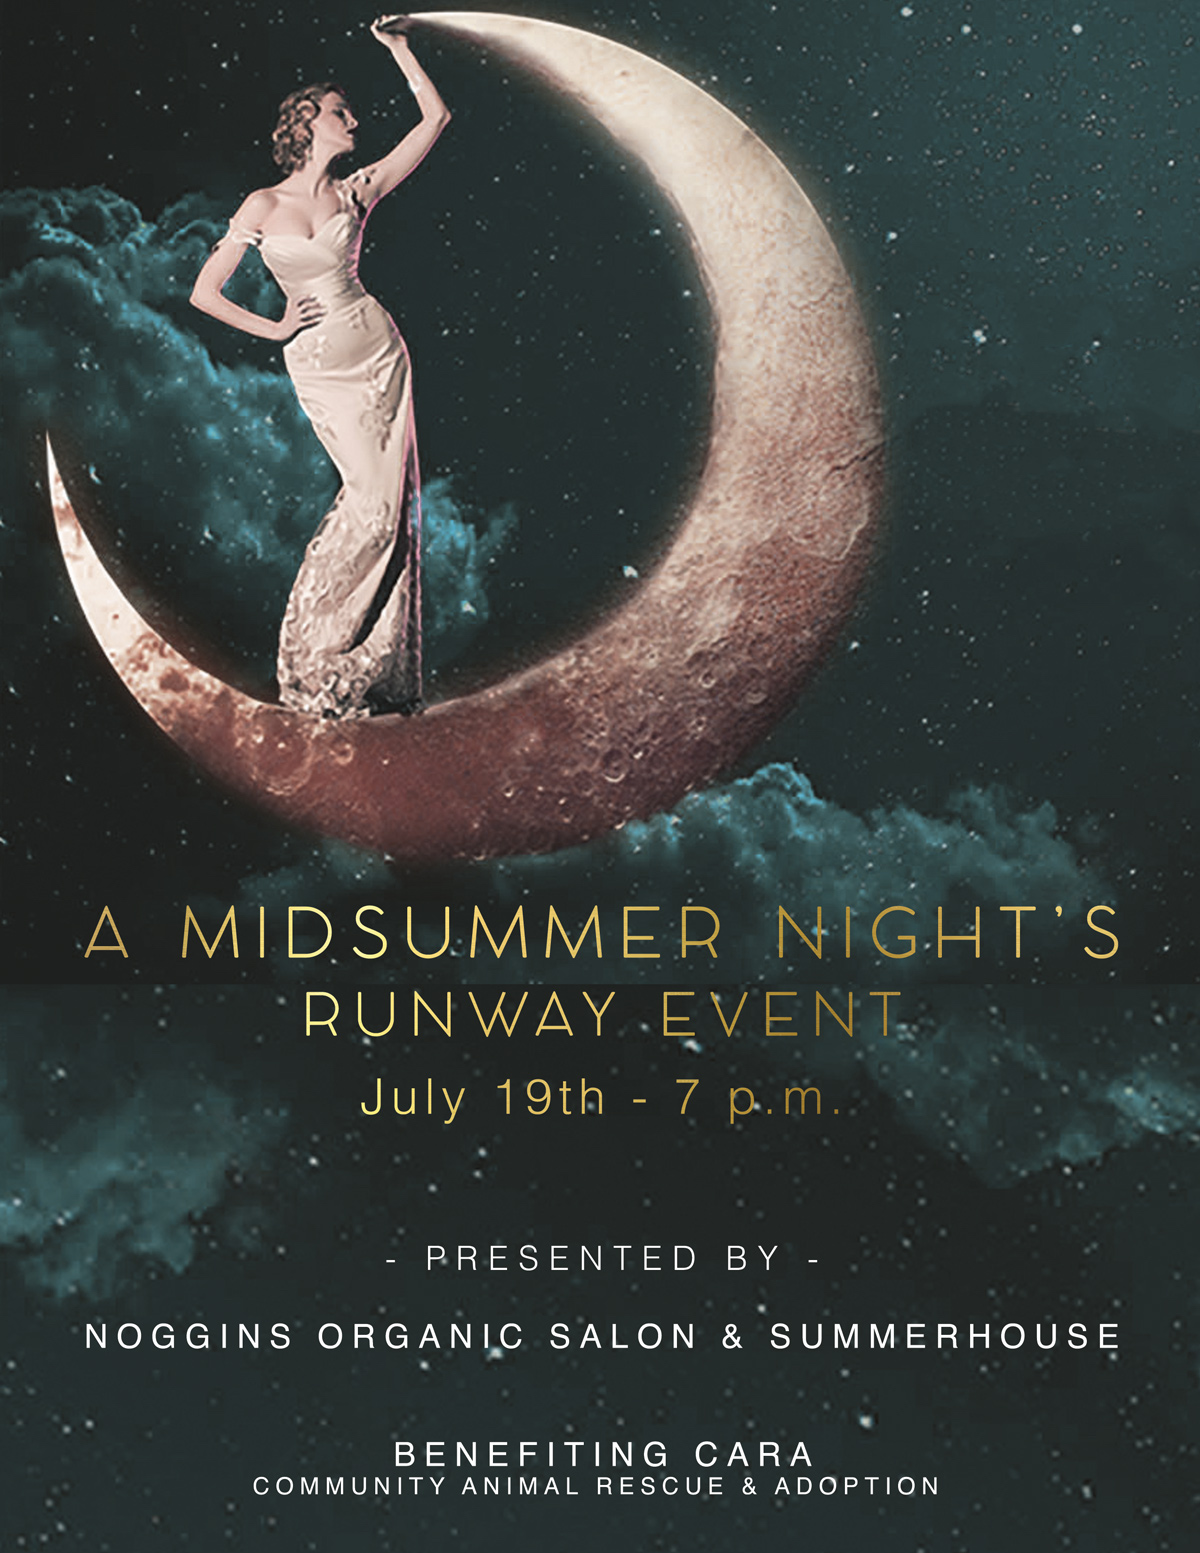 A Midsummer Night's Runway Event at SummerHouse // www.thehiveblog.com